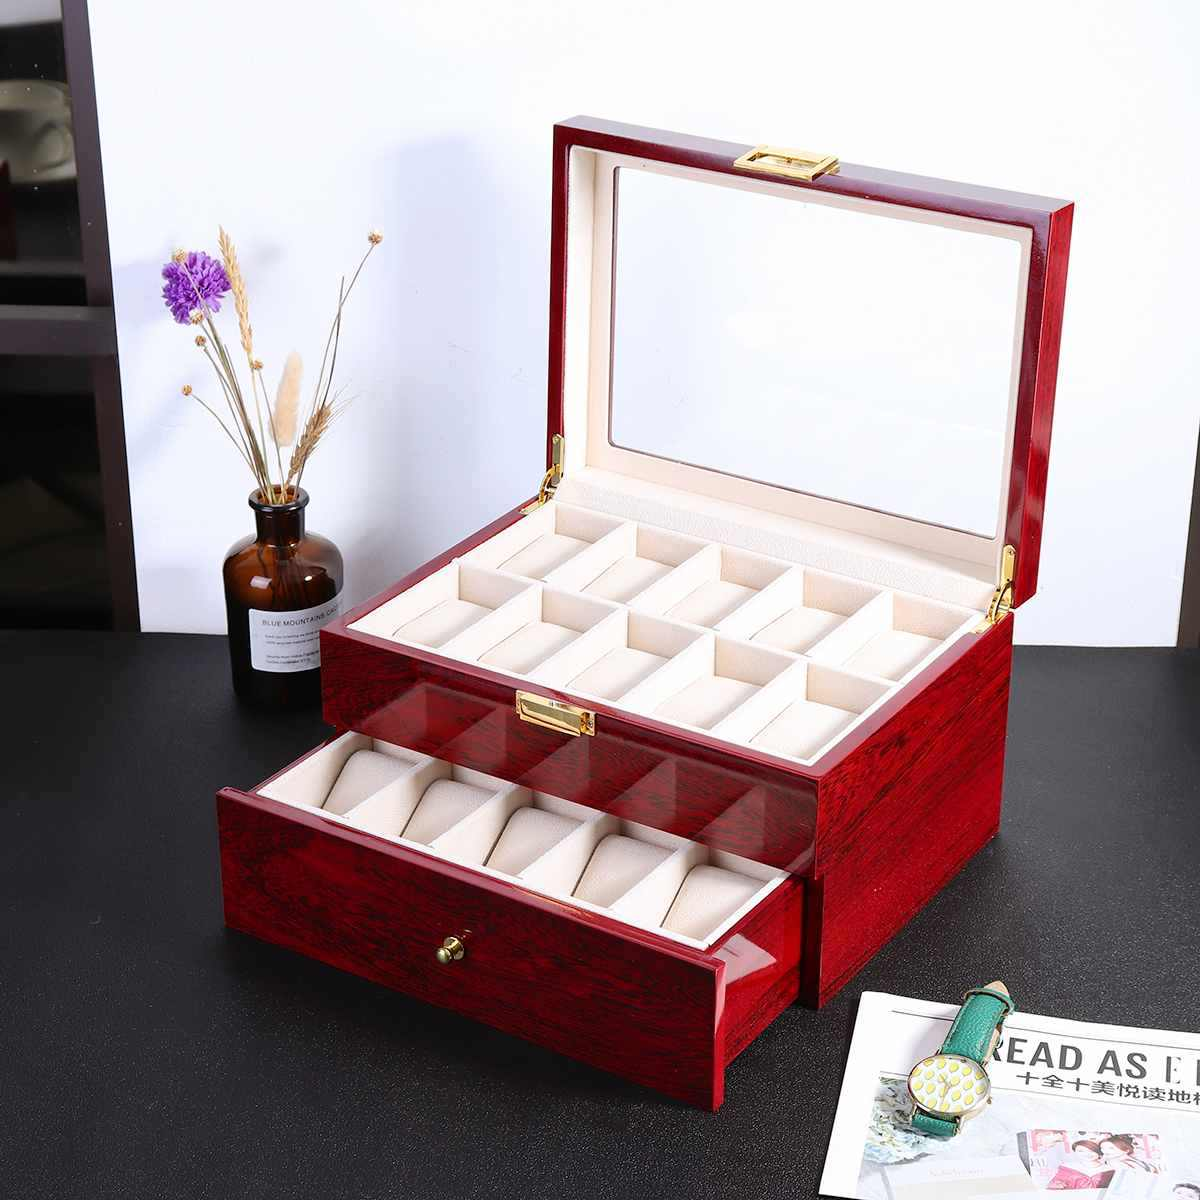 Luxury 10/20 Grids Wrist Watch Display Box Storage Holder Organizer Watch Case Jewelry Display Watch Box Wooden